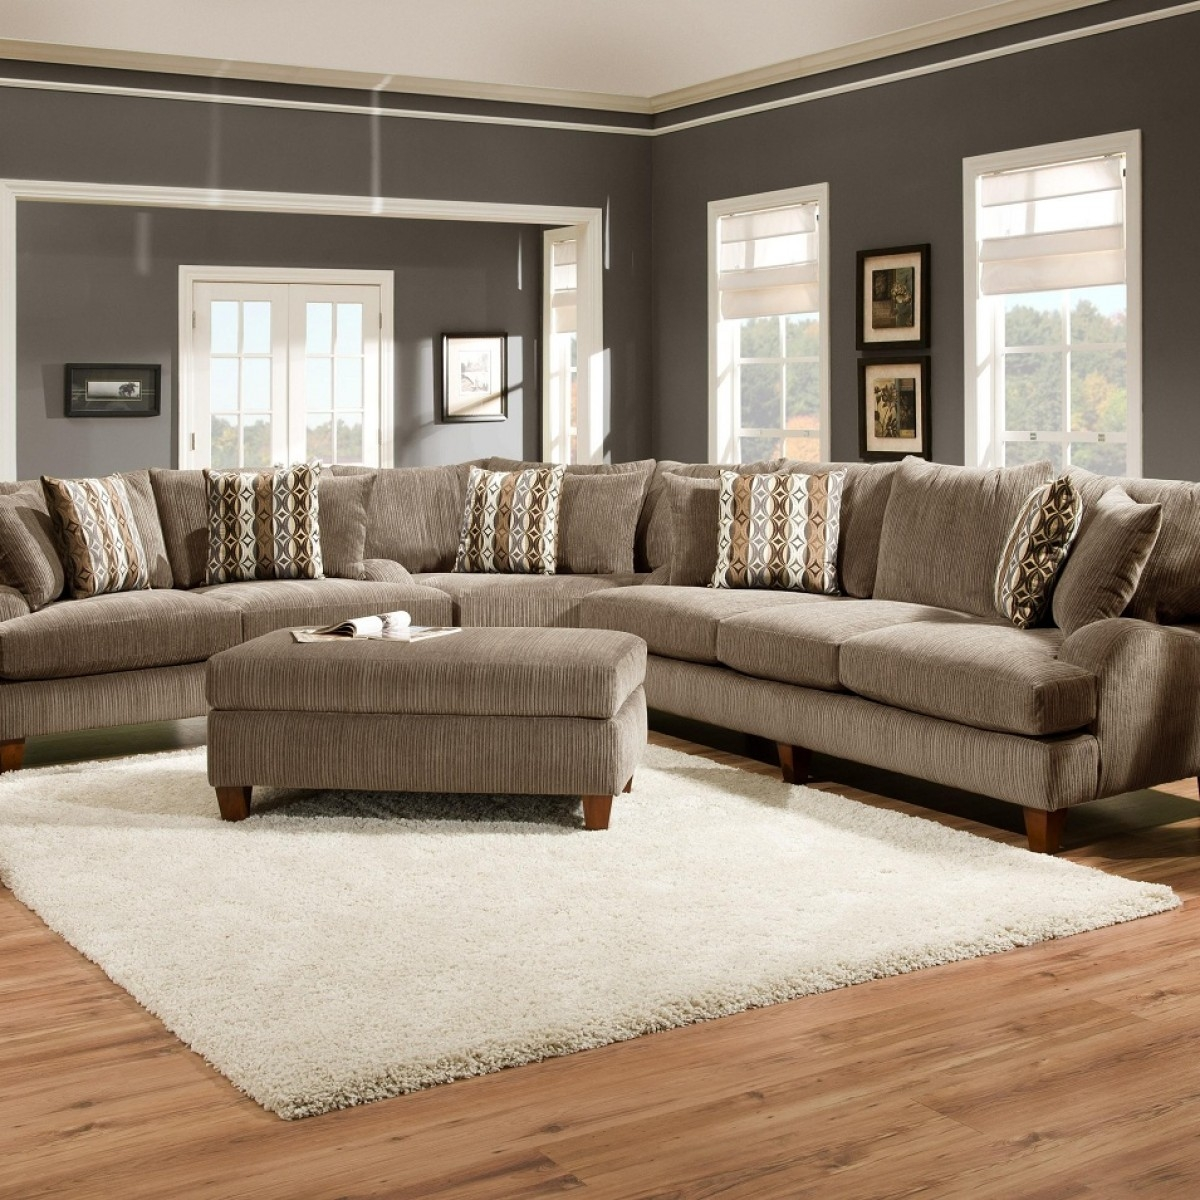 15 Collection Of Extra Large Sectional Sofas Sofa Ideas